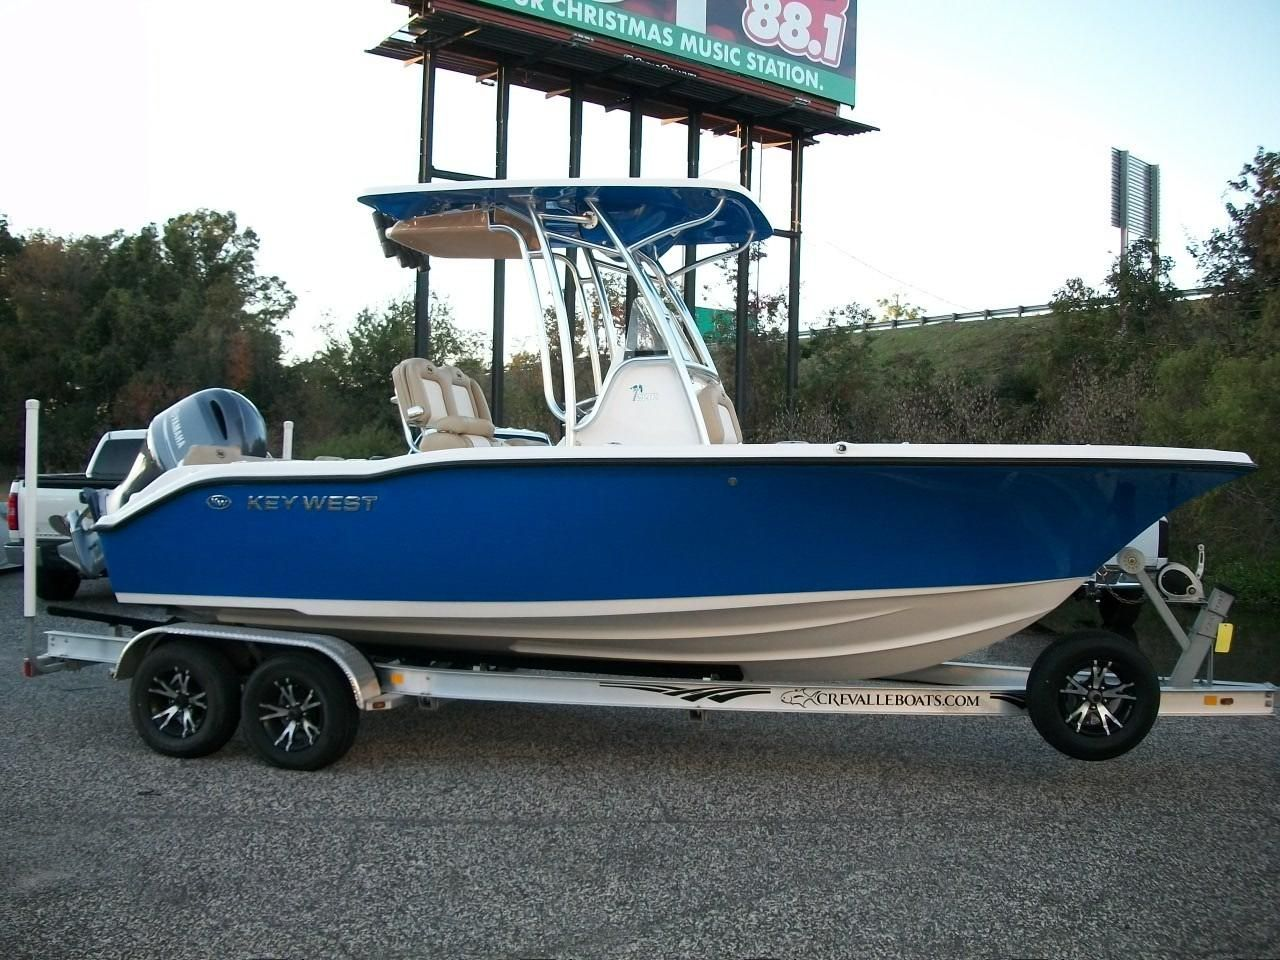 Key West Christmas 2019.2019 New Key West 219 Fs Center Console Fishing Boat For